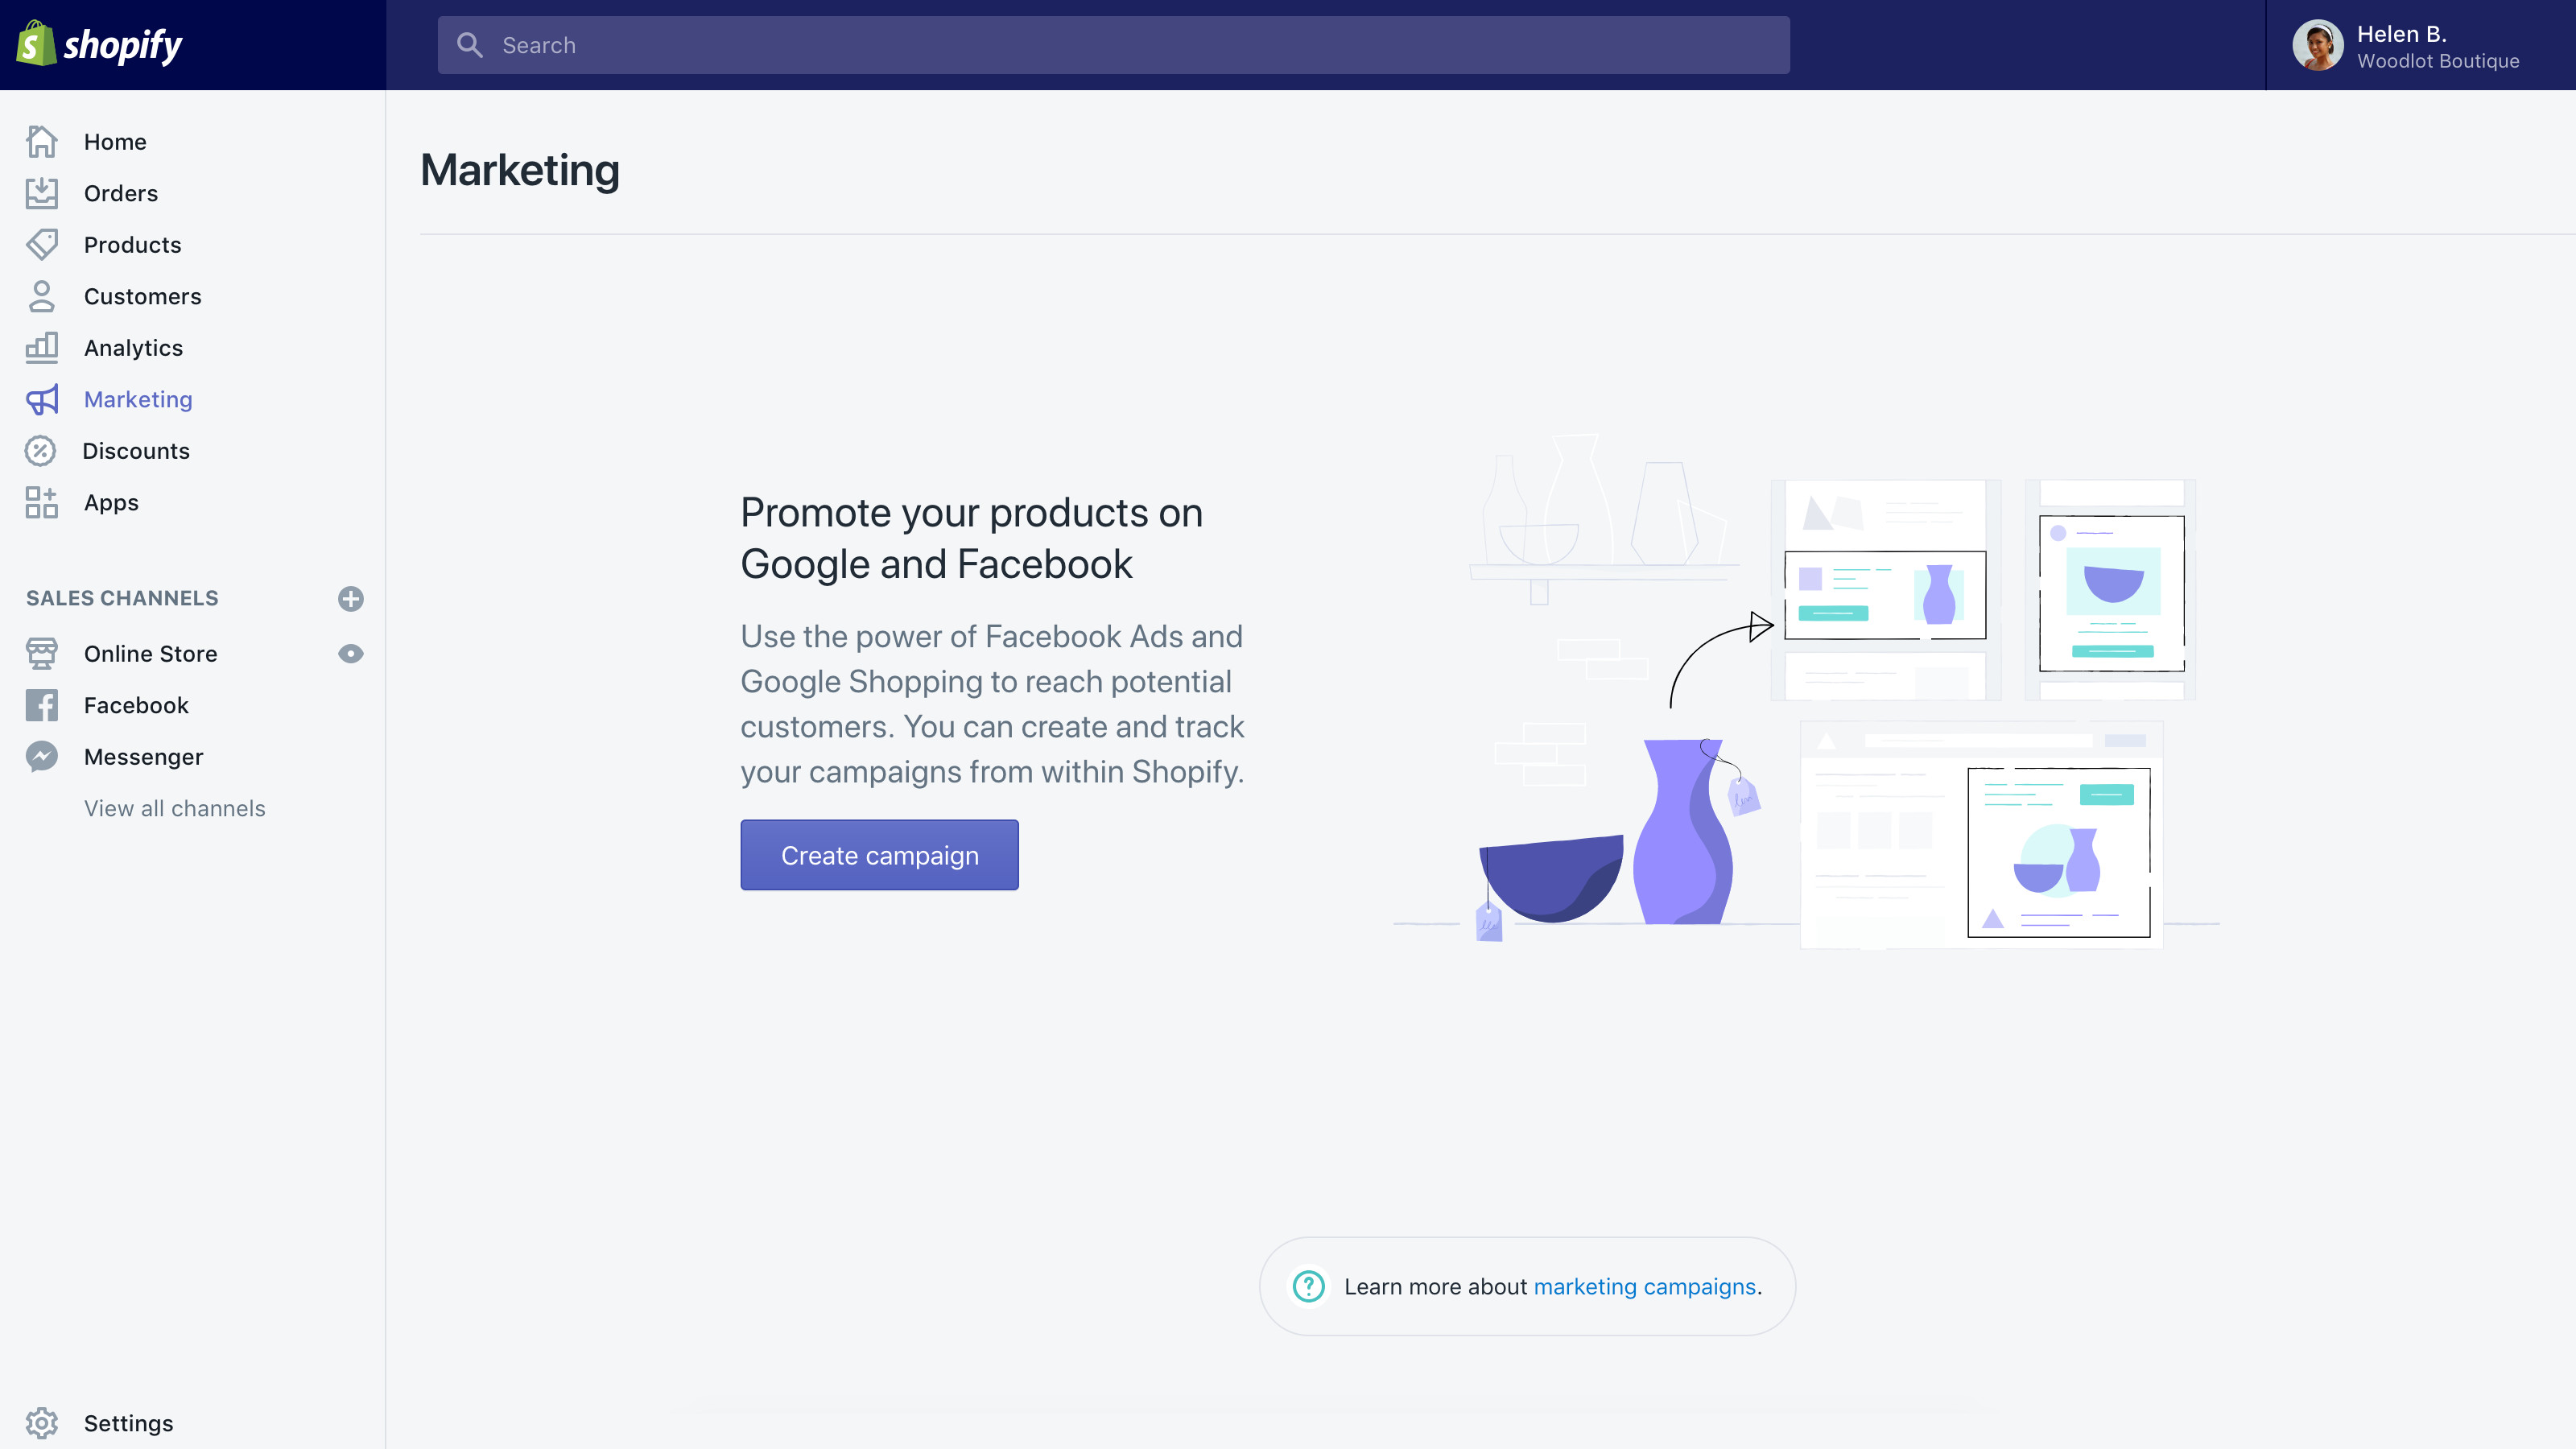 Shopify's Marketing section